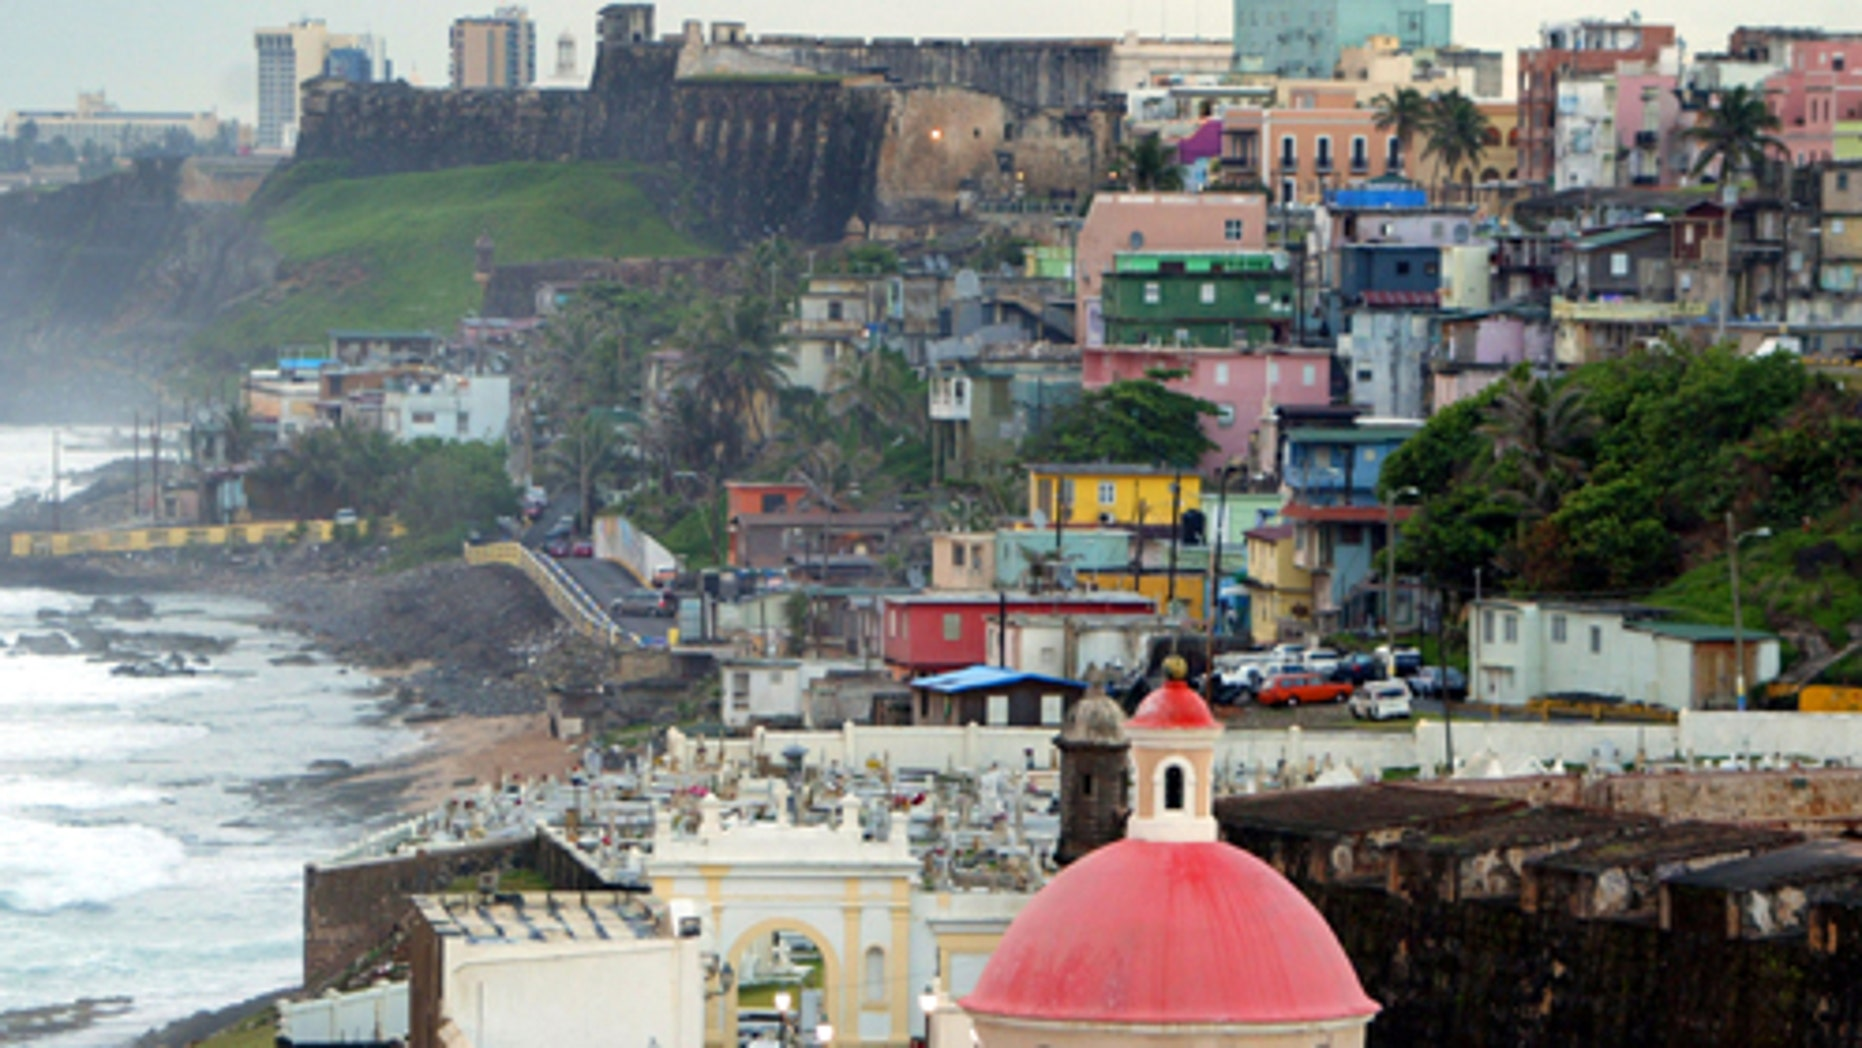 SAN JUAN, PUERTO RICO- APRIL 26: The cupola of San Juan Cemetary as well as colorful homes sit next to the ocean April 26, 2004 in Old San Juan, the original capital city of San Juan, Puerto Rico. The old city is a historic district of seven square blocks made up of ancient buildings and colonial homes, massive stone walls and vast fortifications, sunny parks and cobblestoned streets.  (Photo by Joe Raedle/Getty Images)